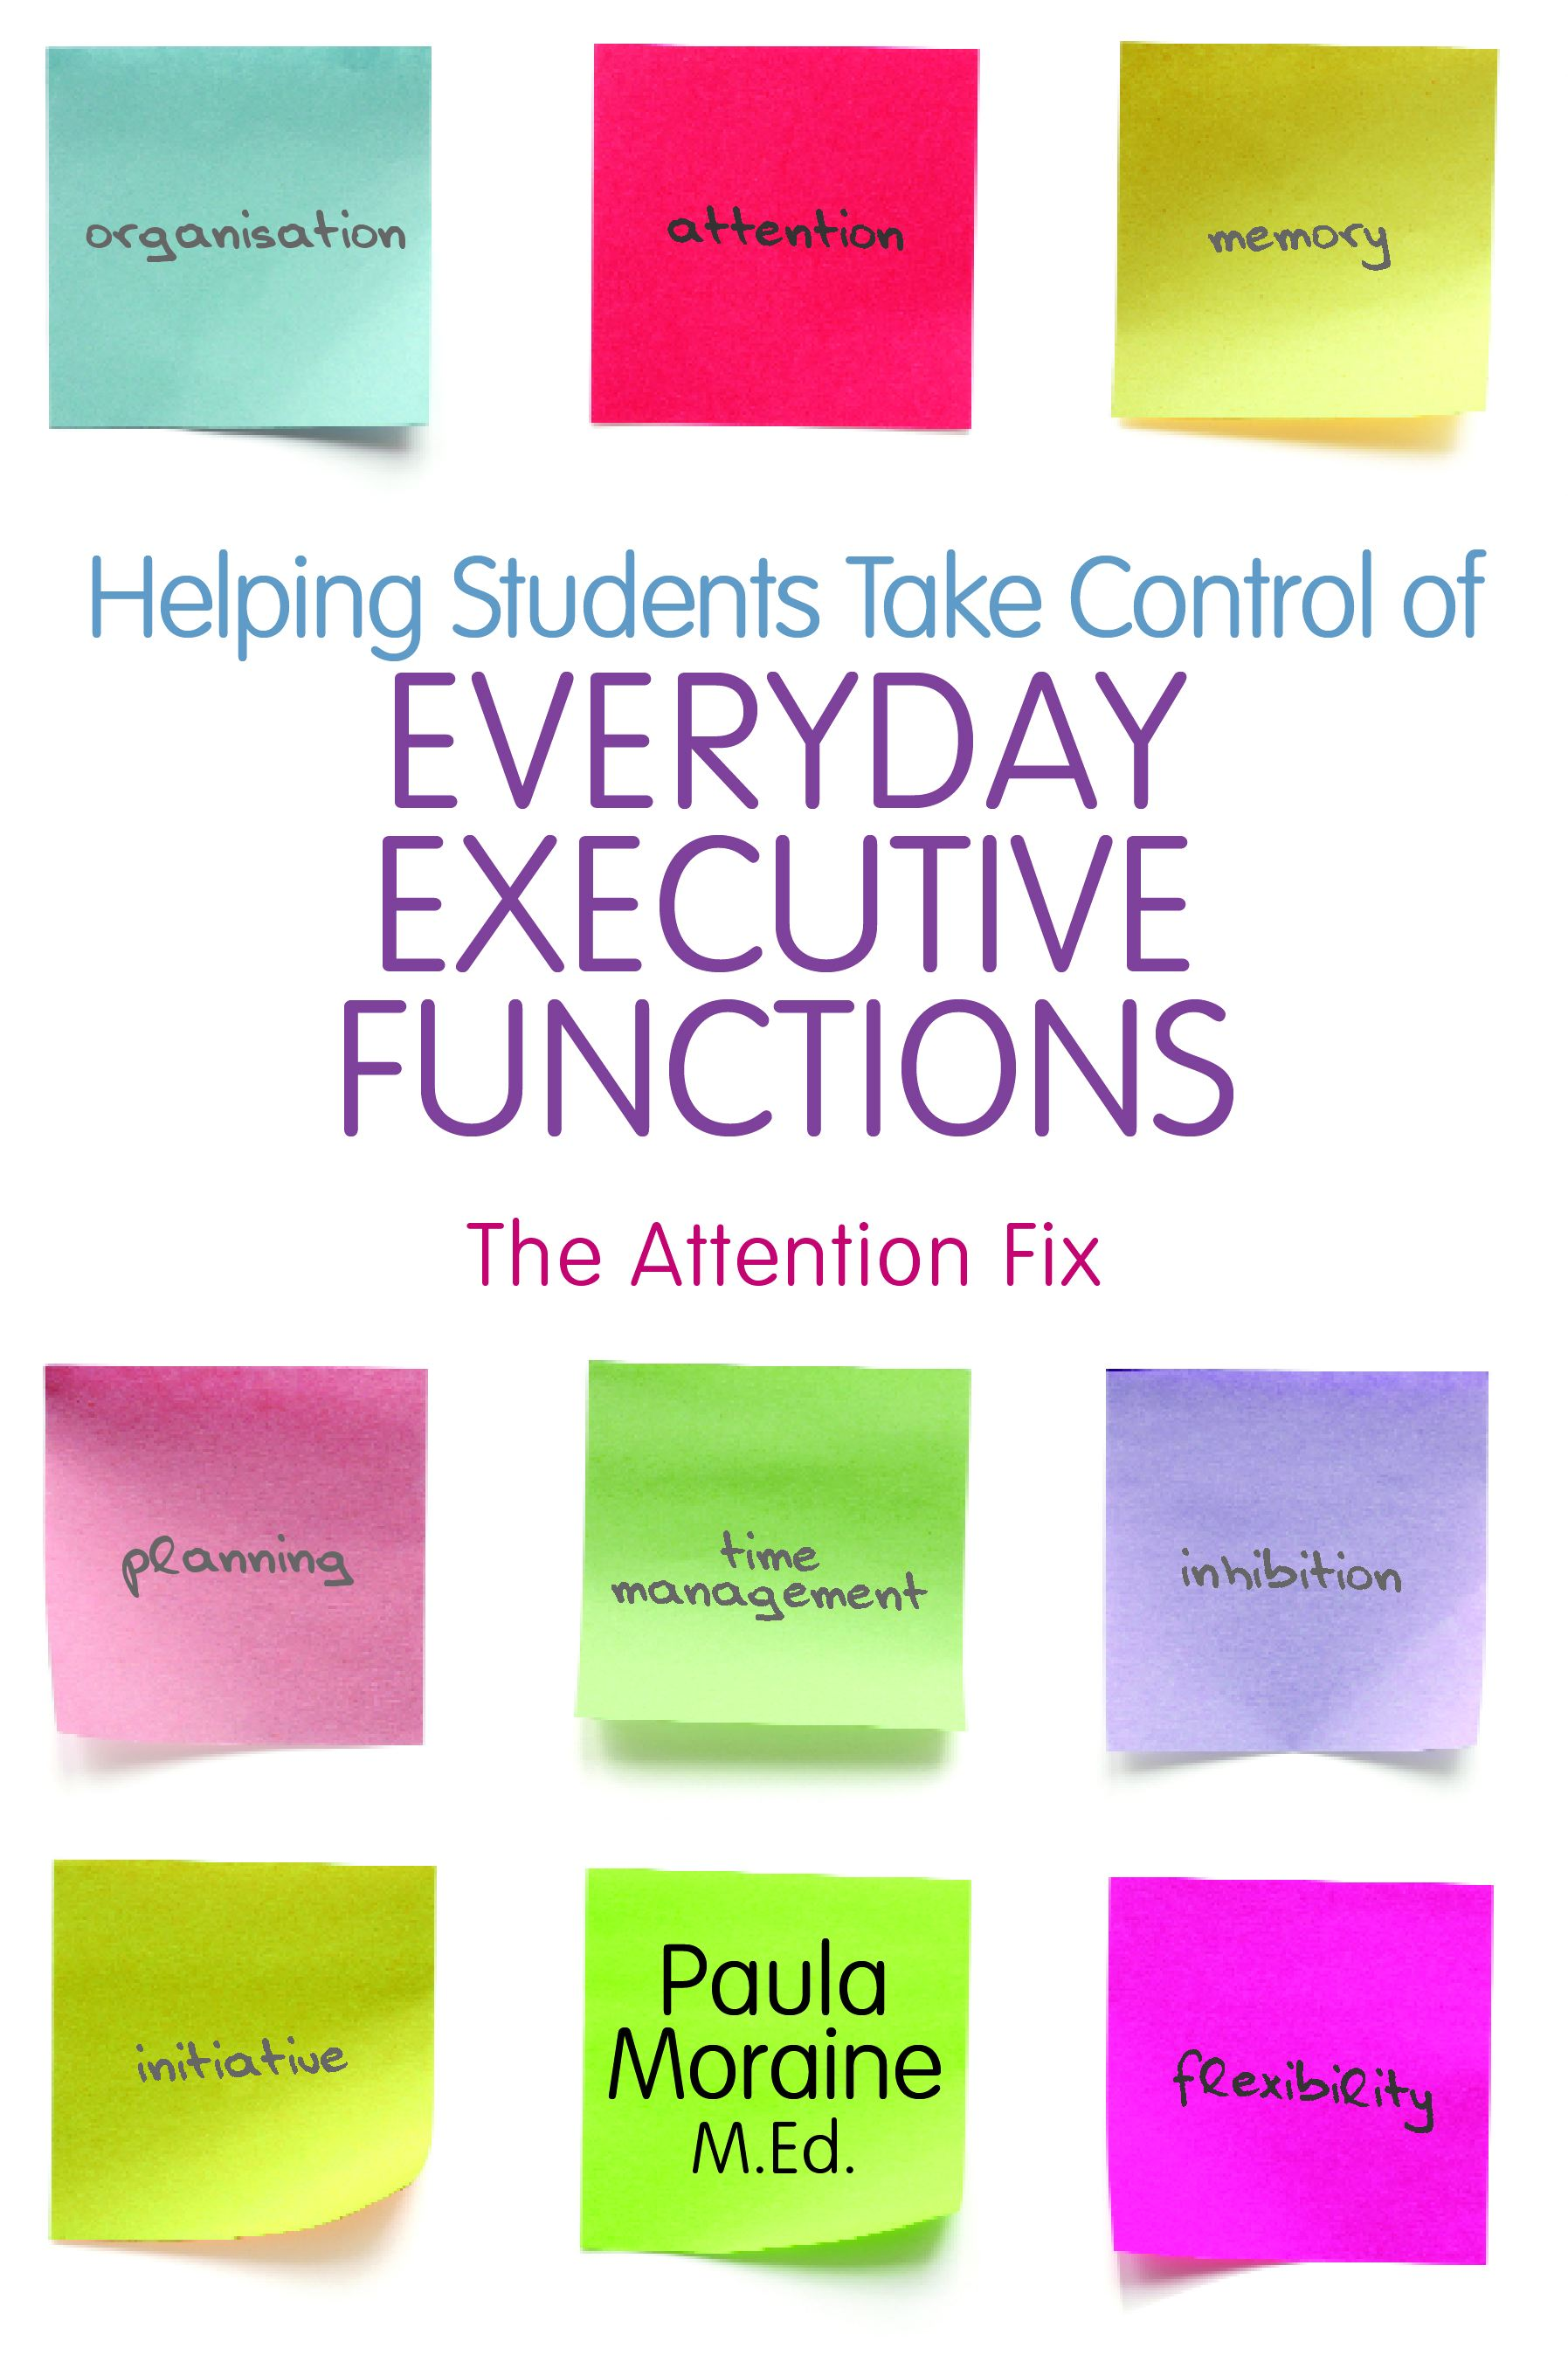 Everyday Executive Functions Attention Fix Tool Tip Repair A Circuit Board Skool